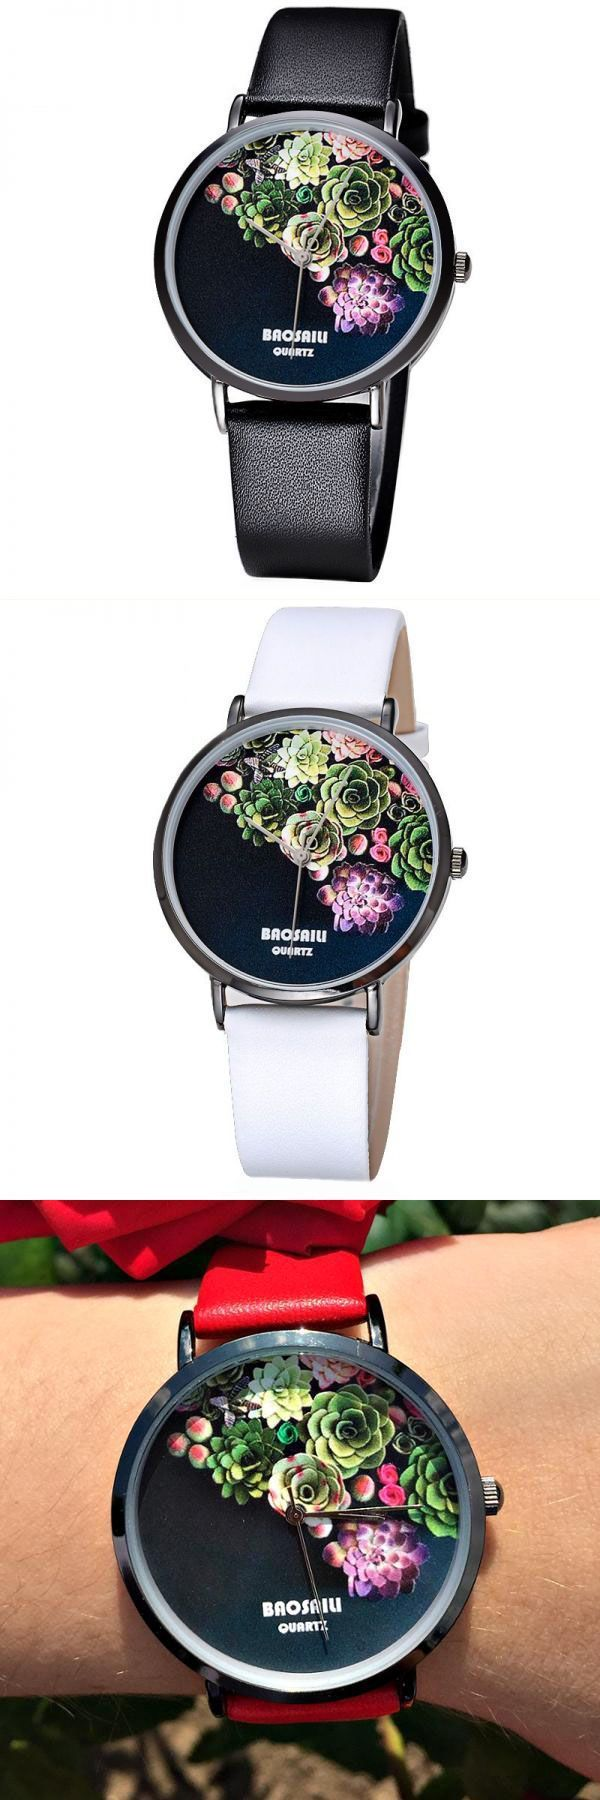 Casual style dress up baosaili women watch luxury fashion floral design leather strap ladies wrist watch #casual #style #2017 #casual #style #instagram #casual #style #set #word #smart #casual #nautical #style